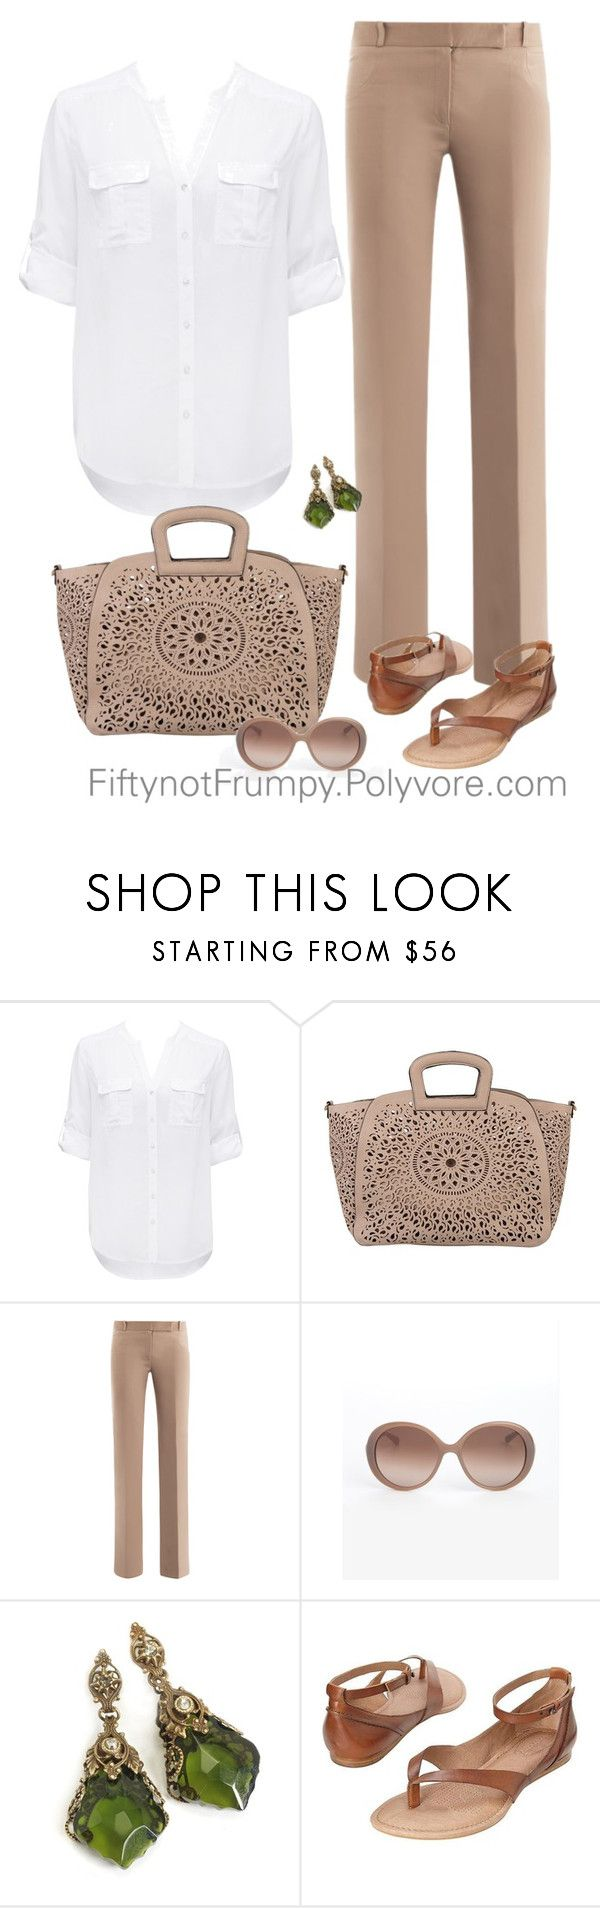 """""""Bohemian Sunday"""" by fiftynotfrumpy ❤ liked on Polyvore featuring Forever New, Melie Bianco, Freda, Marc by Marc Jacobs and Corso Como"""